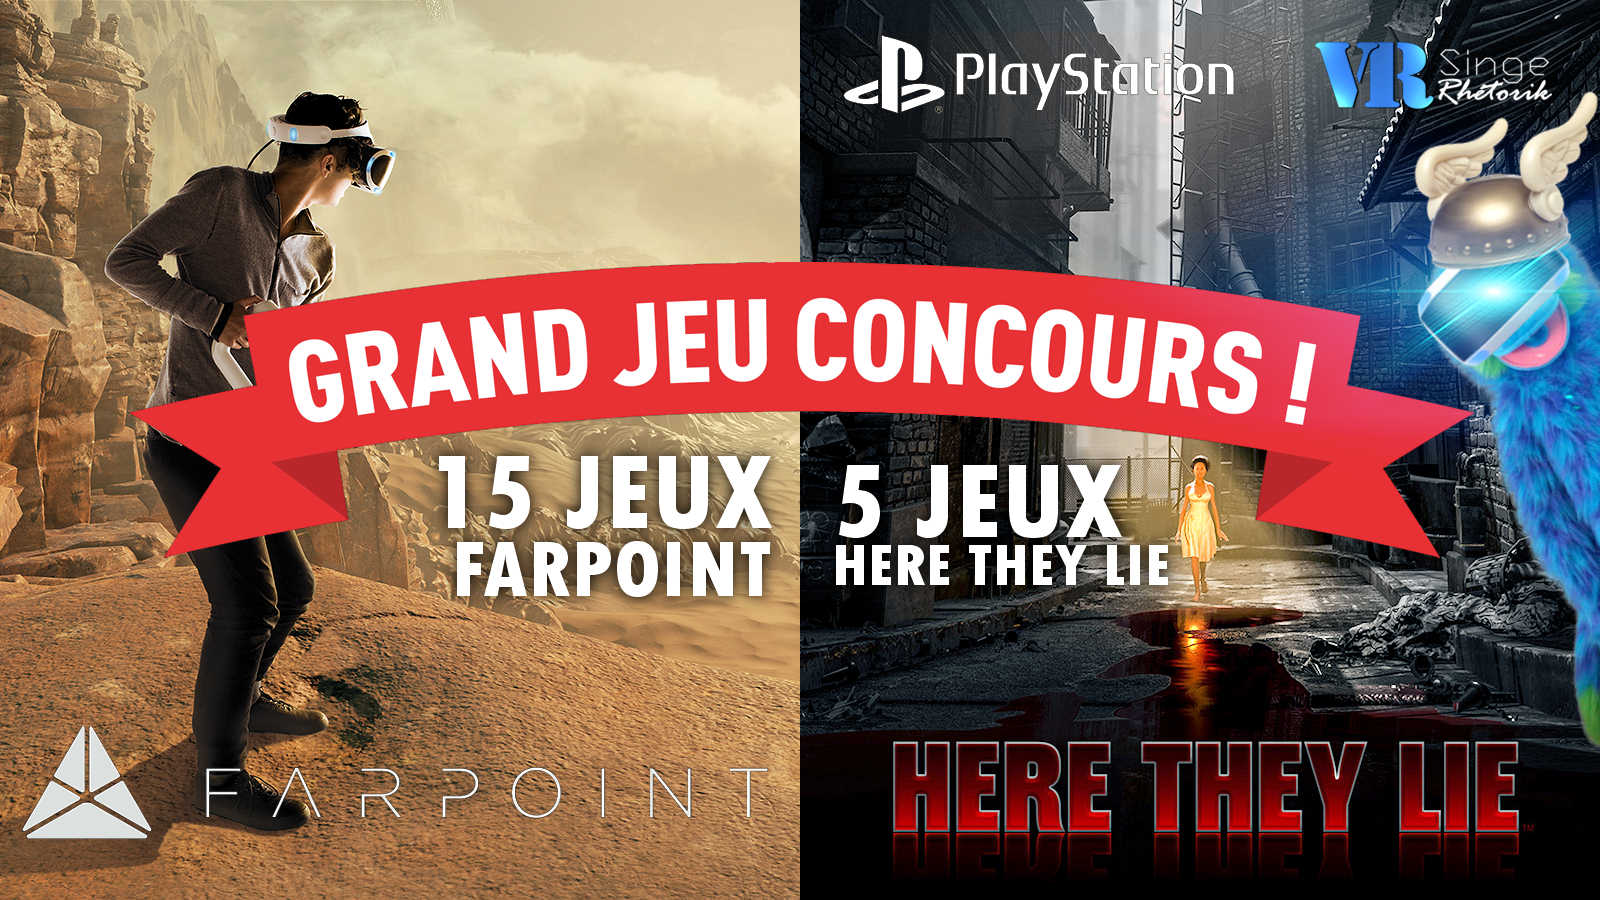 Noël - Grand Concours PlayStation France : 20 jeux PS VR à gagner (Farpoint et Here They Lie)